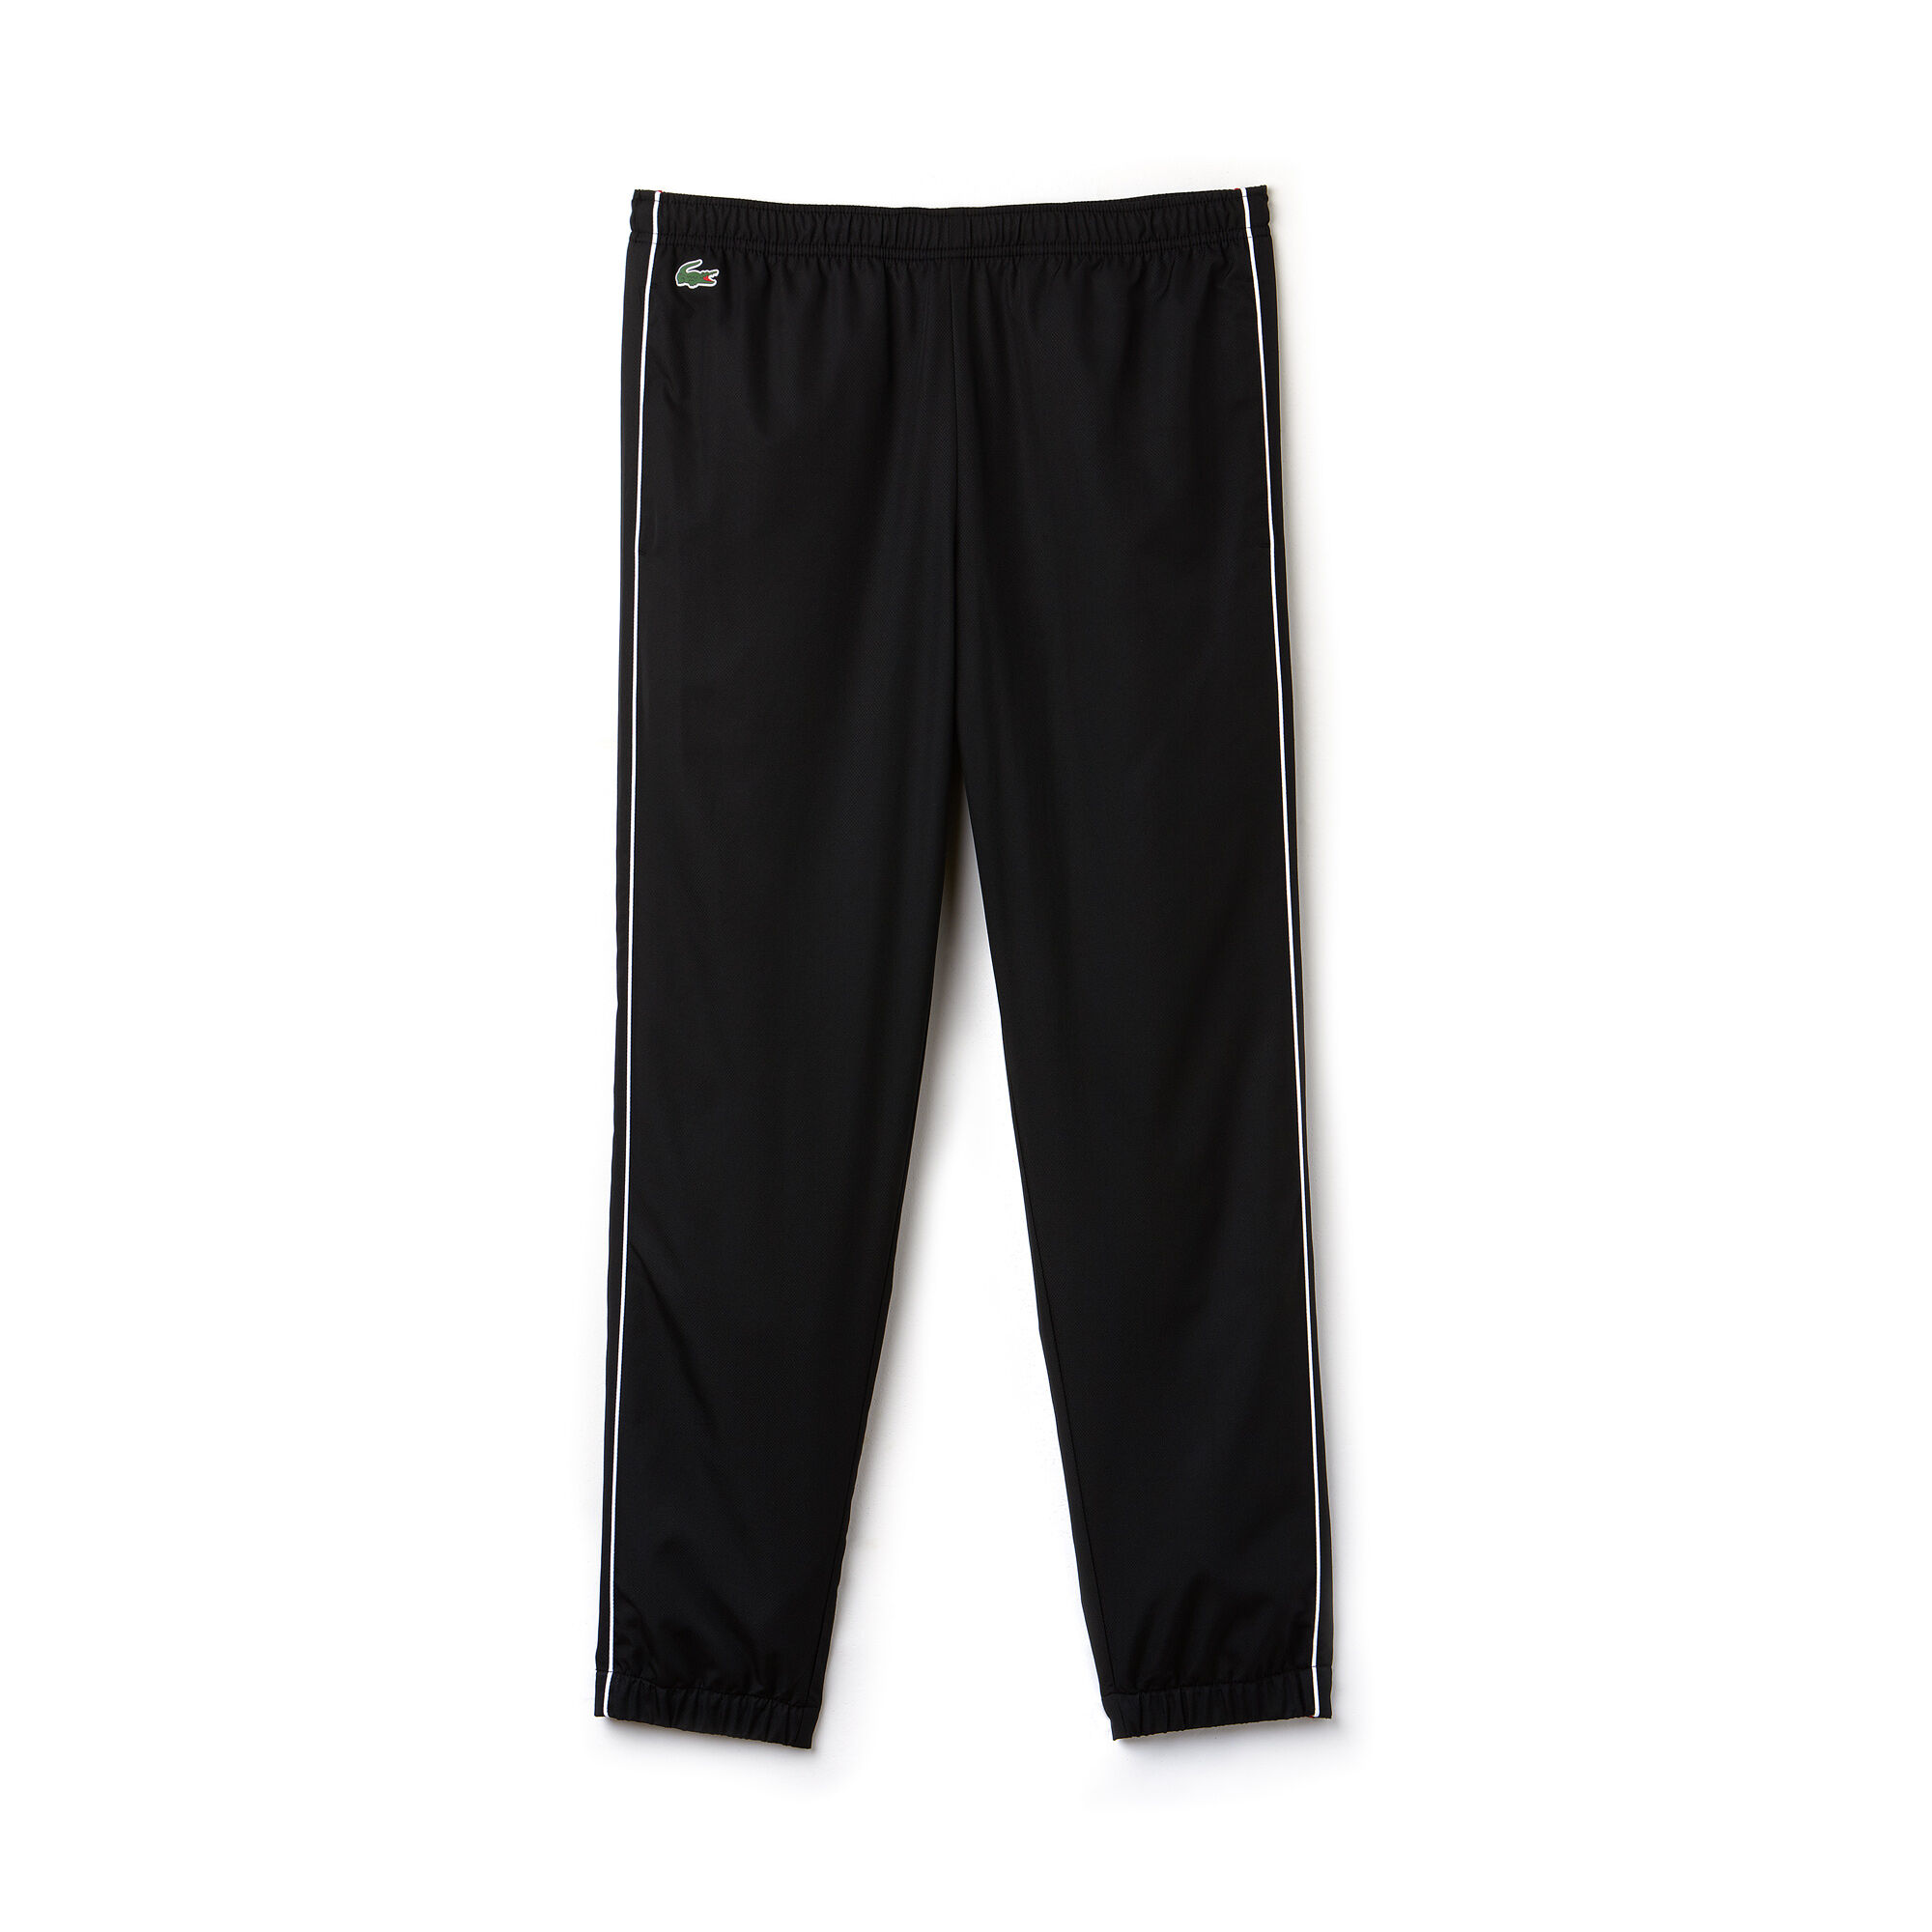 Lacoste Childrens Fleece Pant - Charcoal Marl